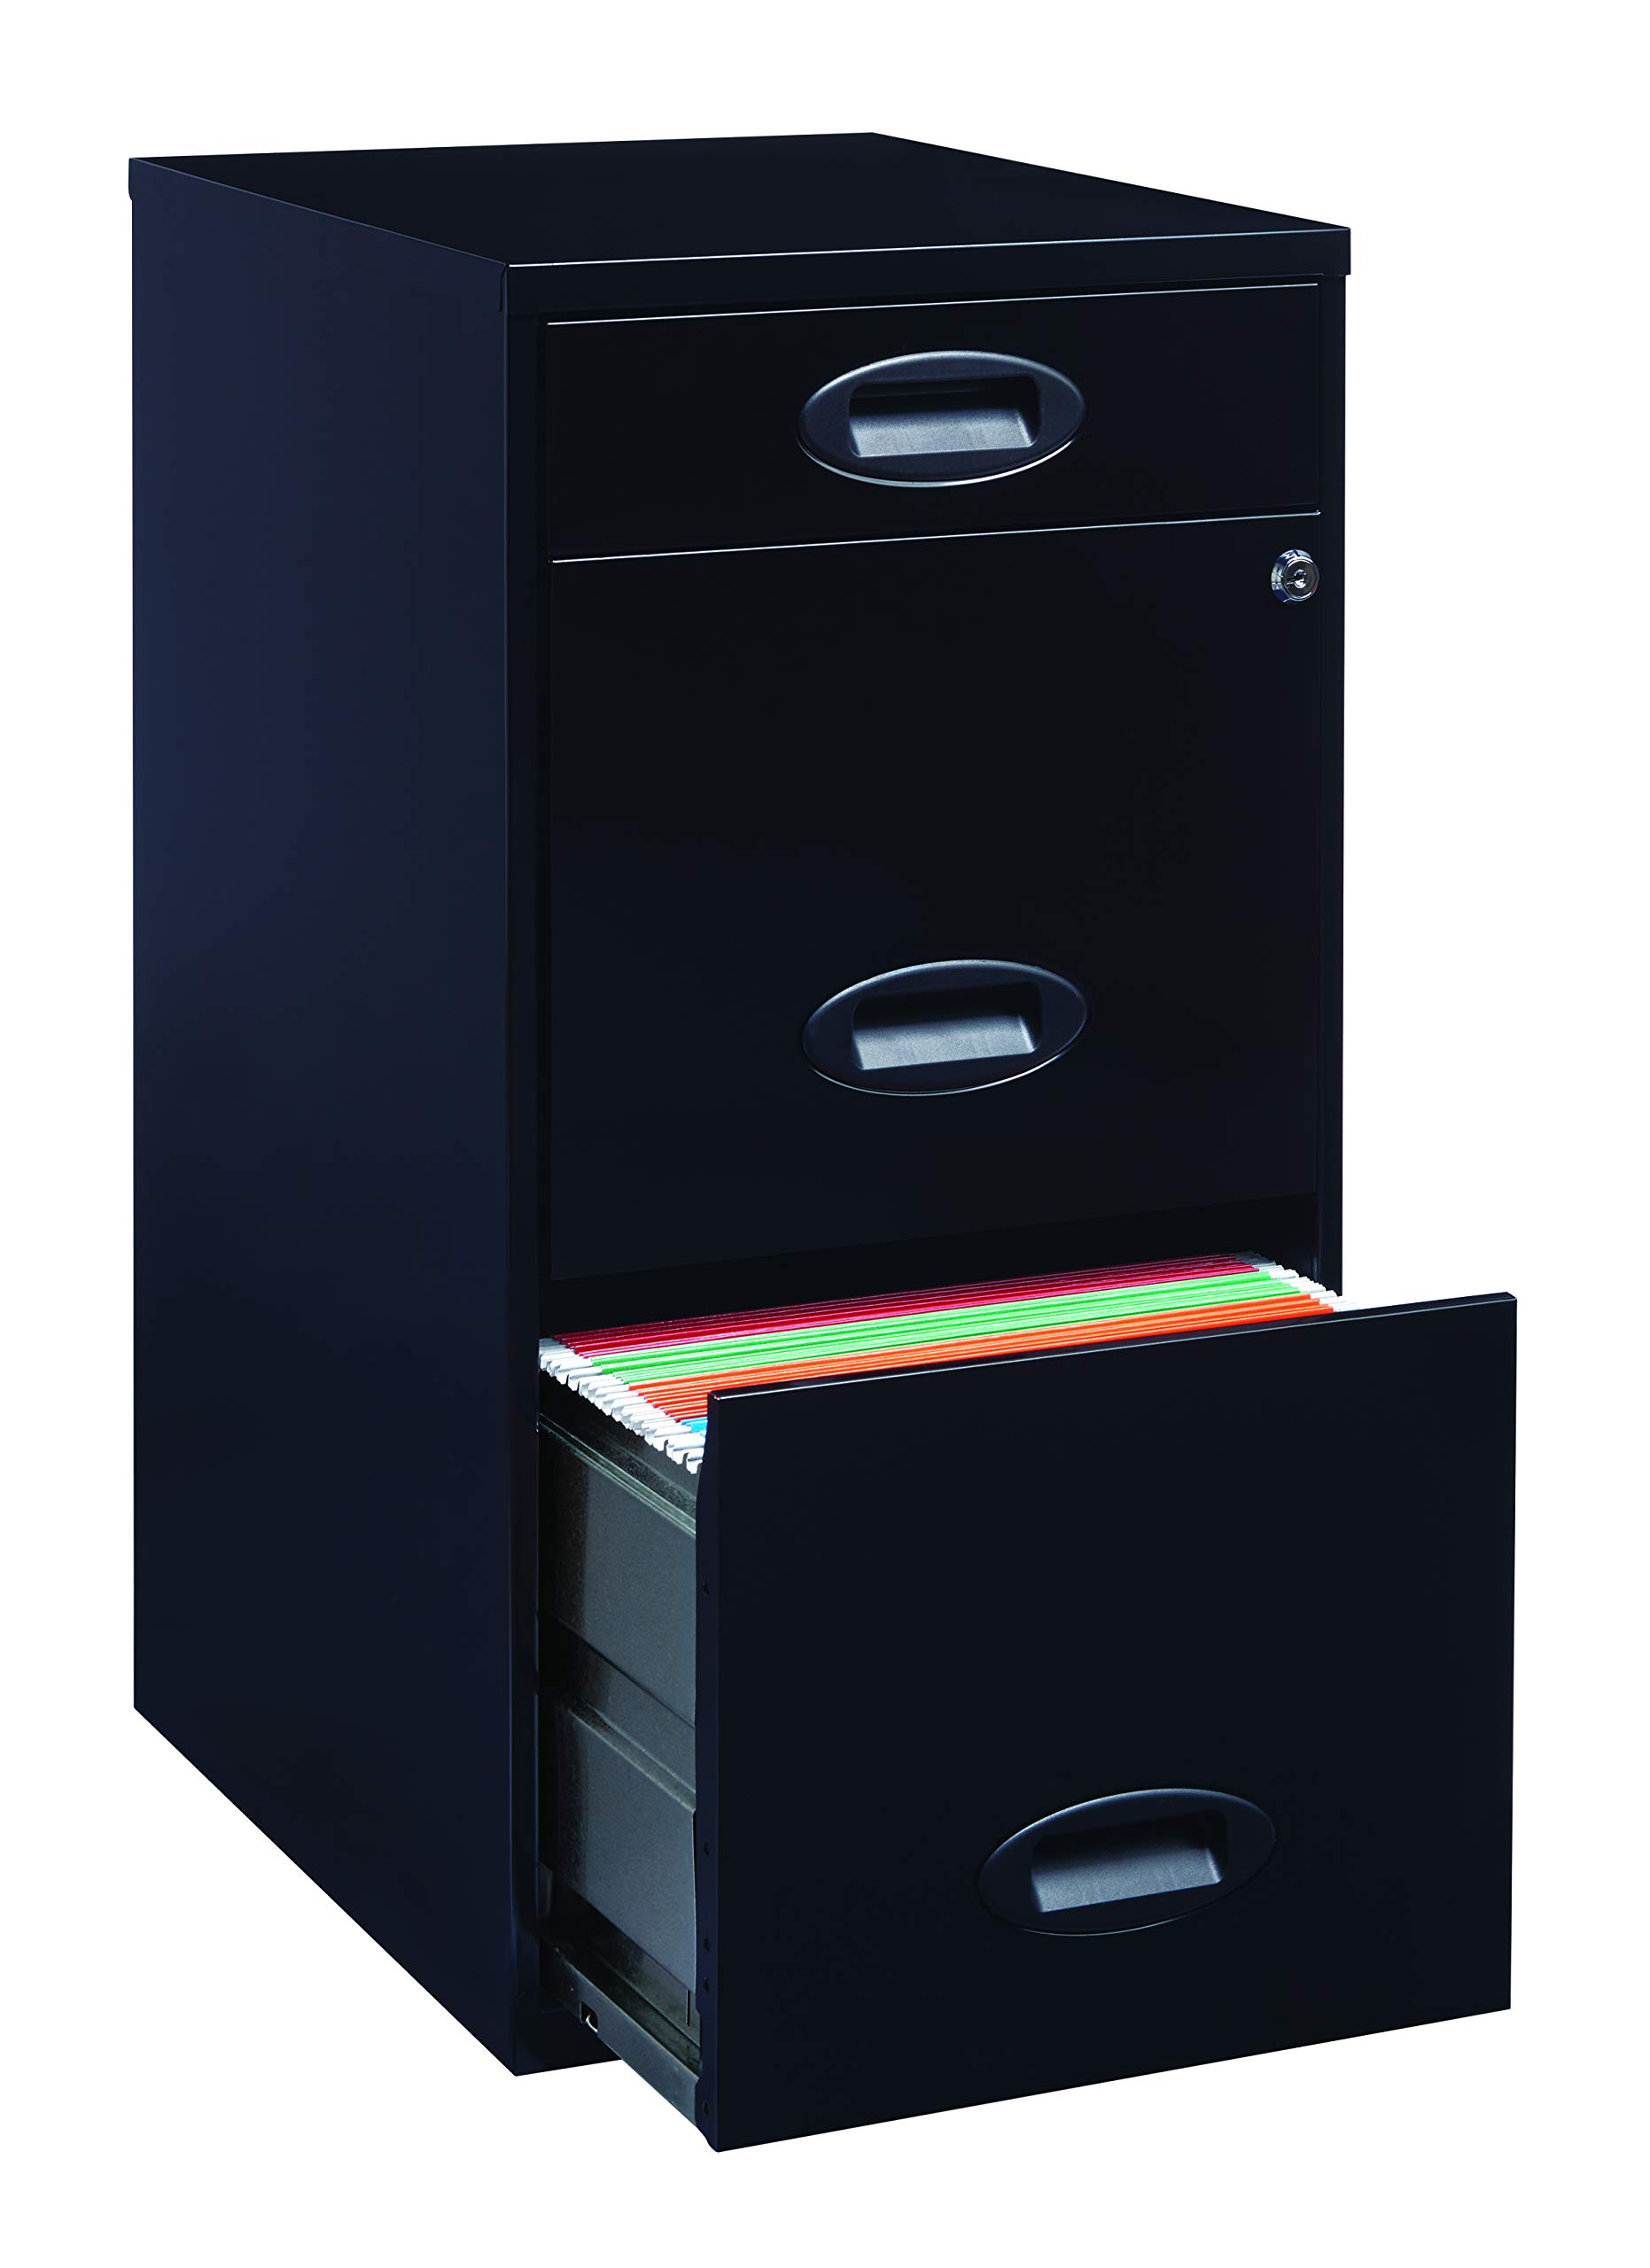 Office Dimensions 18'' Deep 3 Drawer Metal Organizer File Cabinet with Oval Handles, Black (21617) by Space Solutions